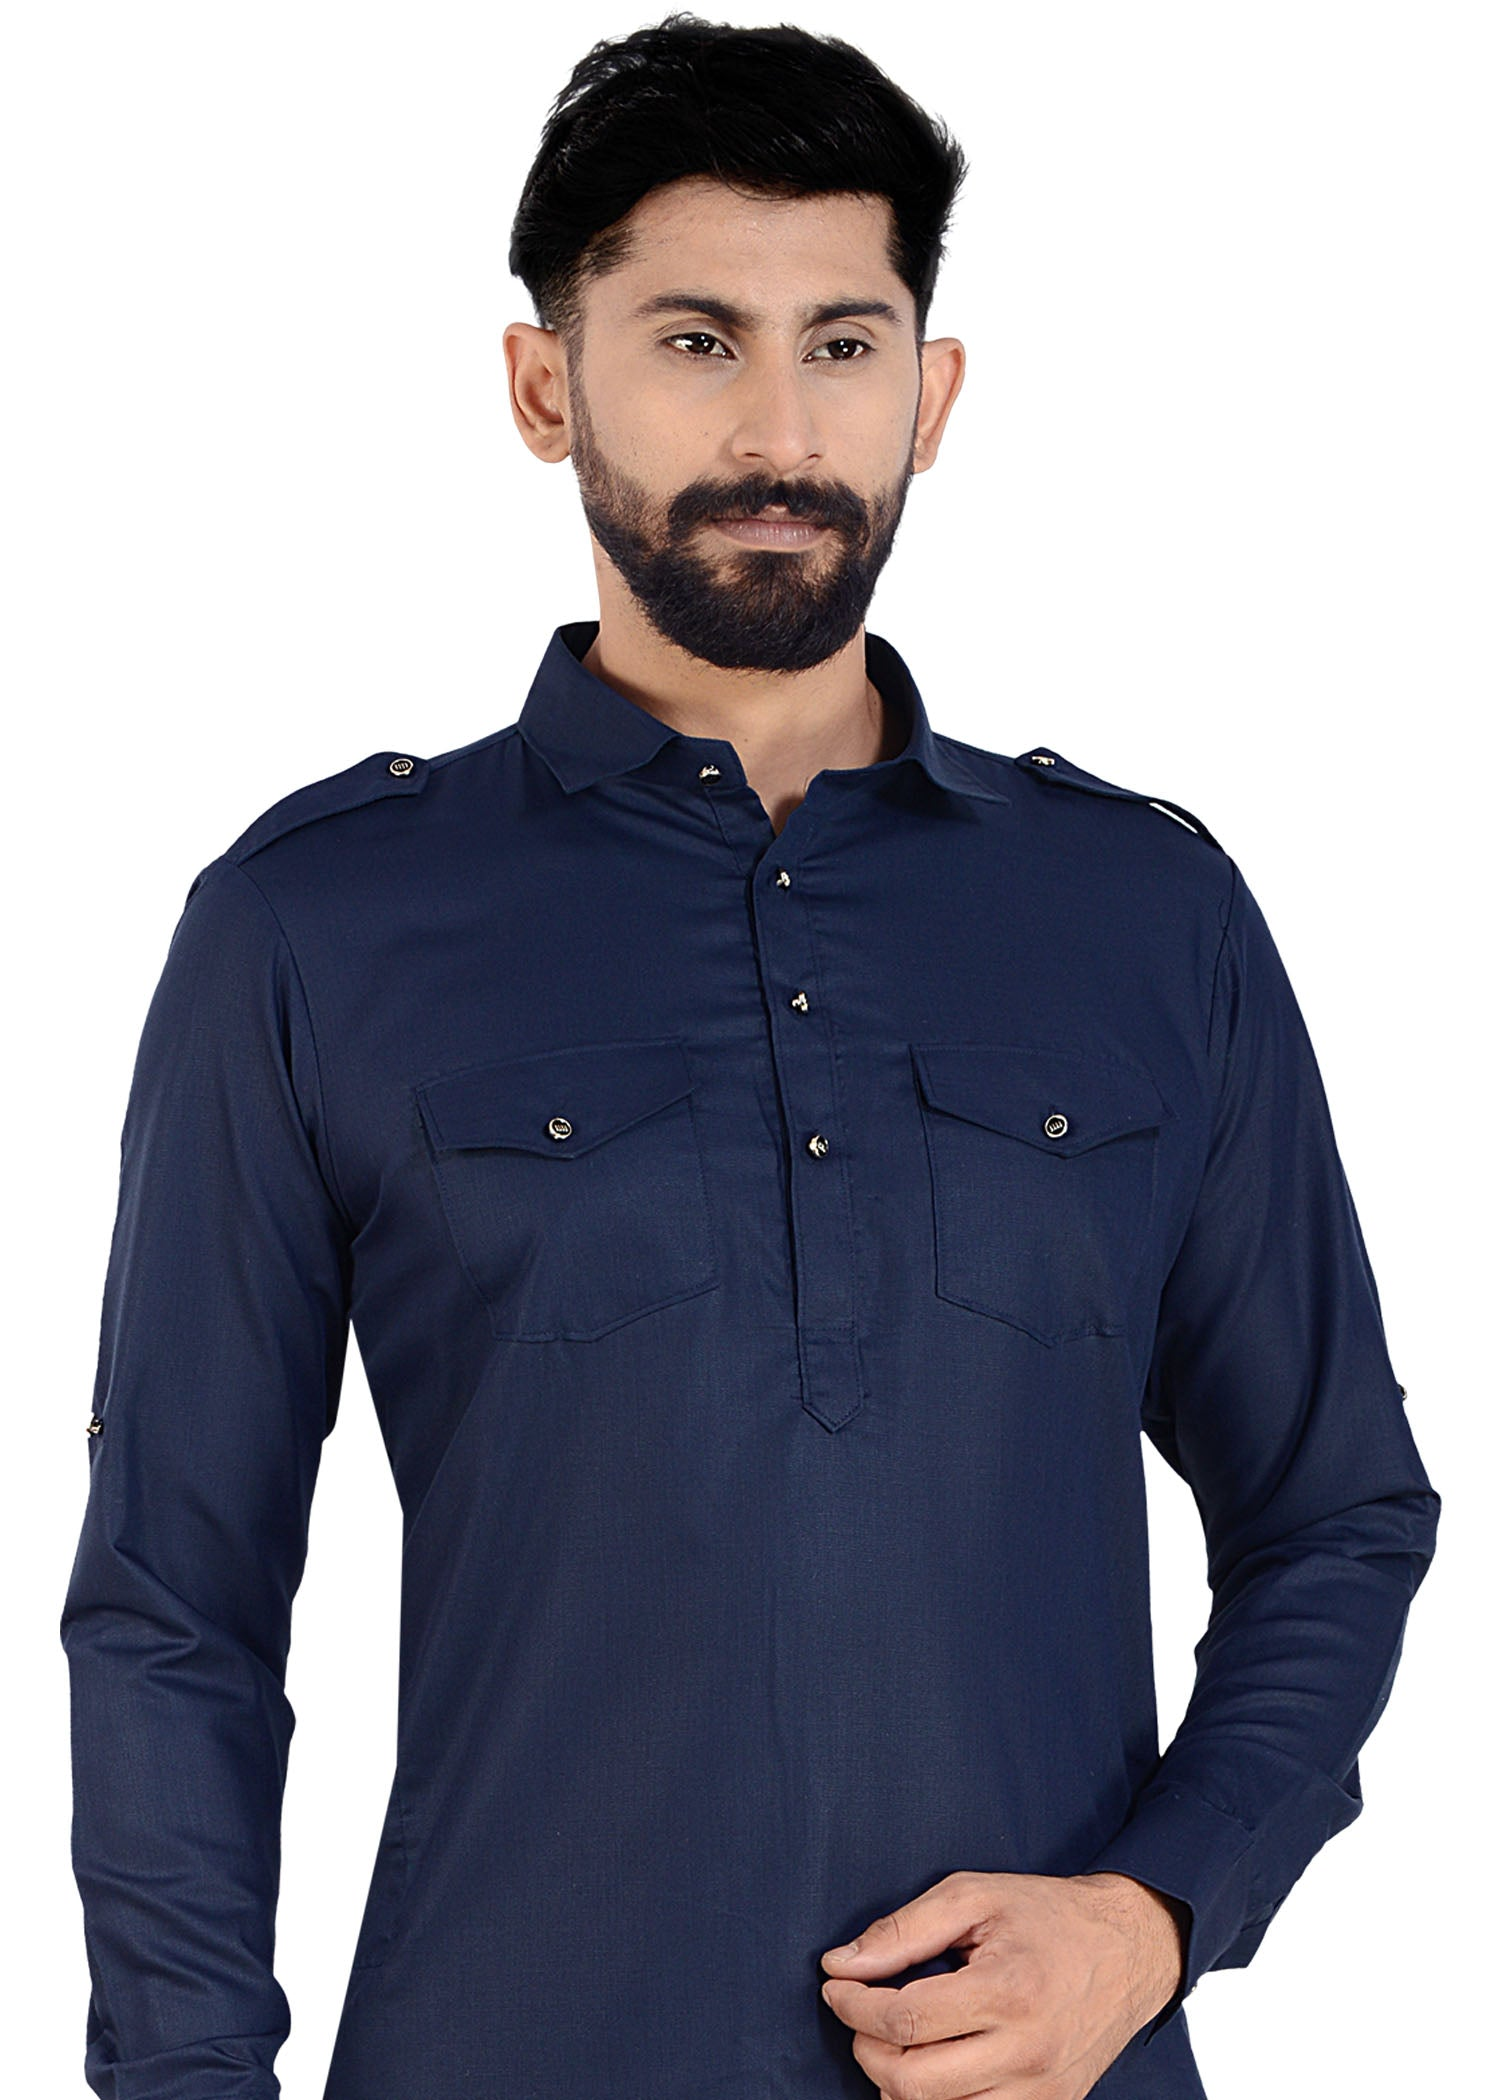 Navy Blue Soft Polyester Cotton Pathani Suit